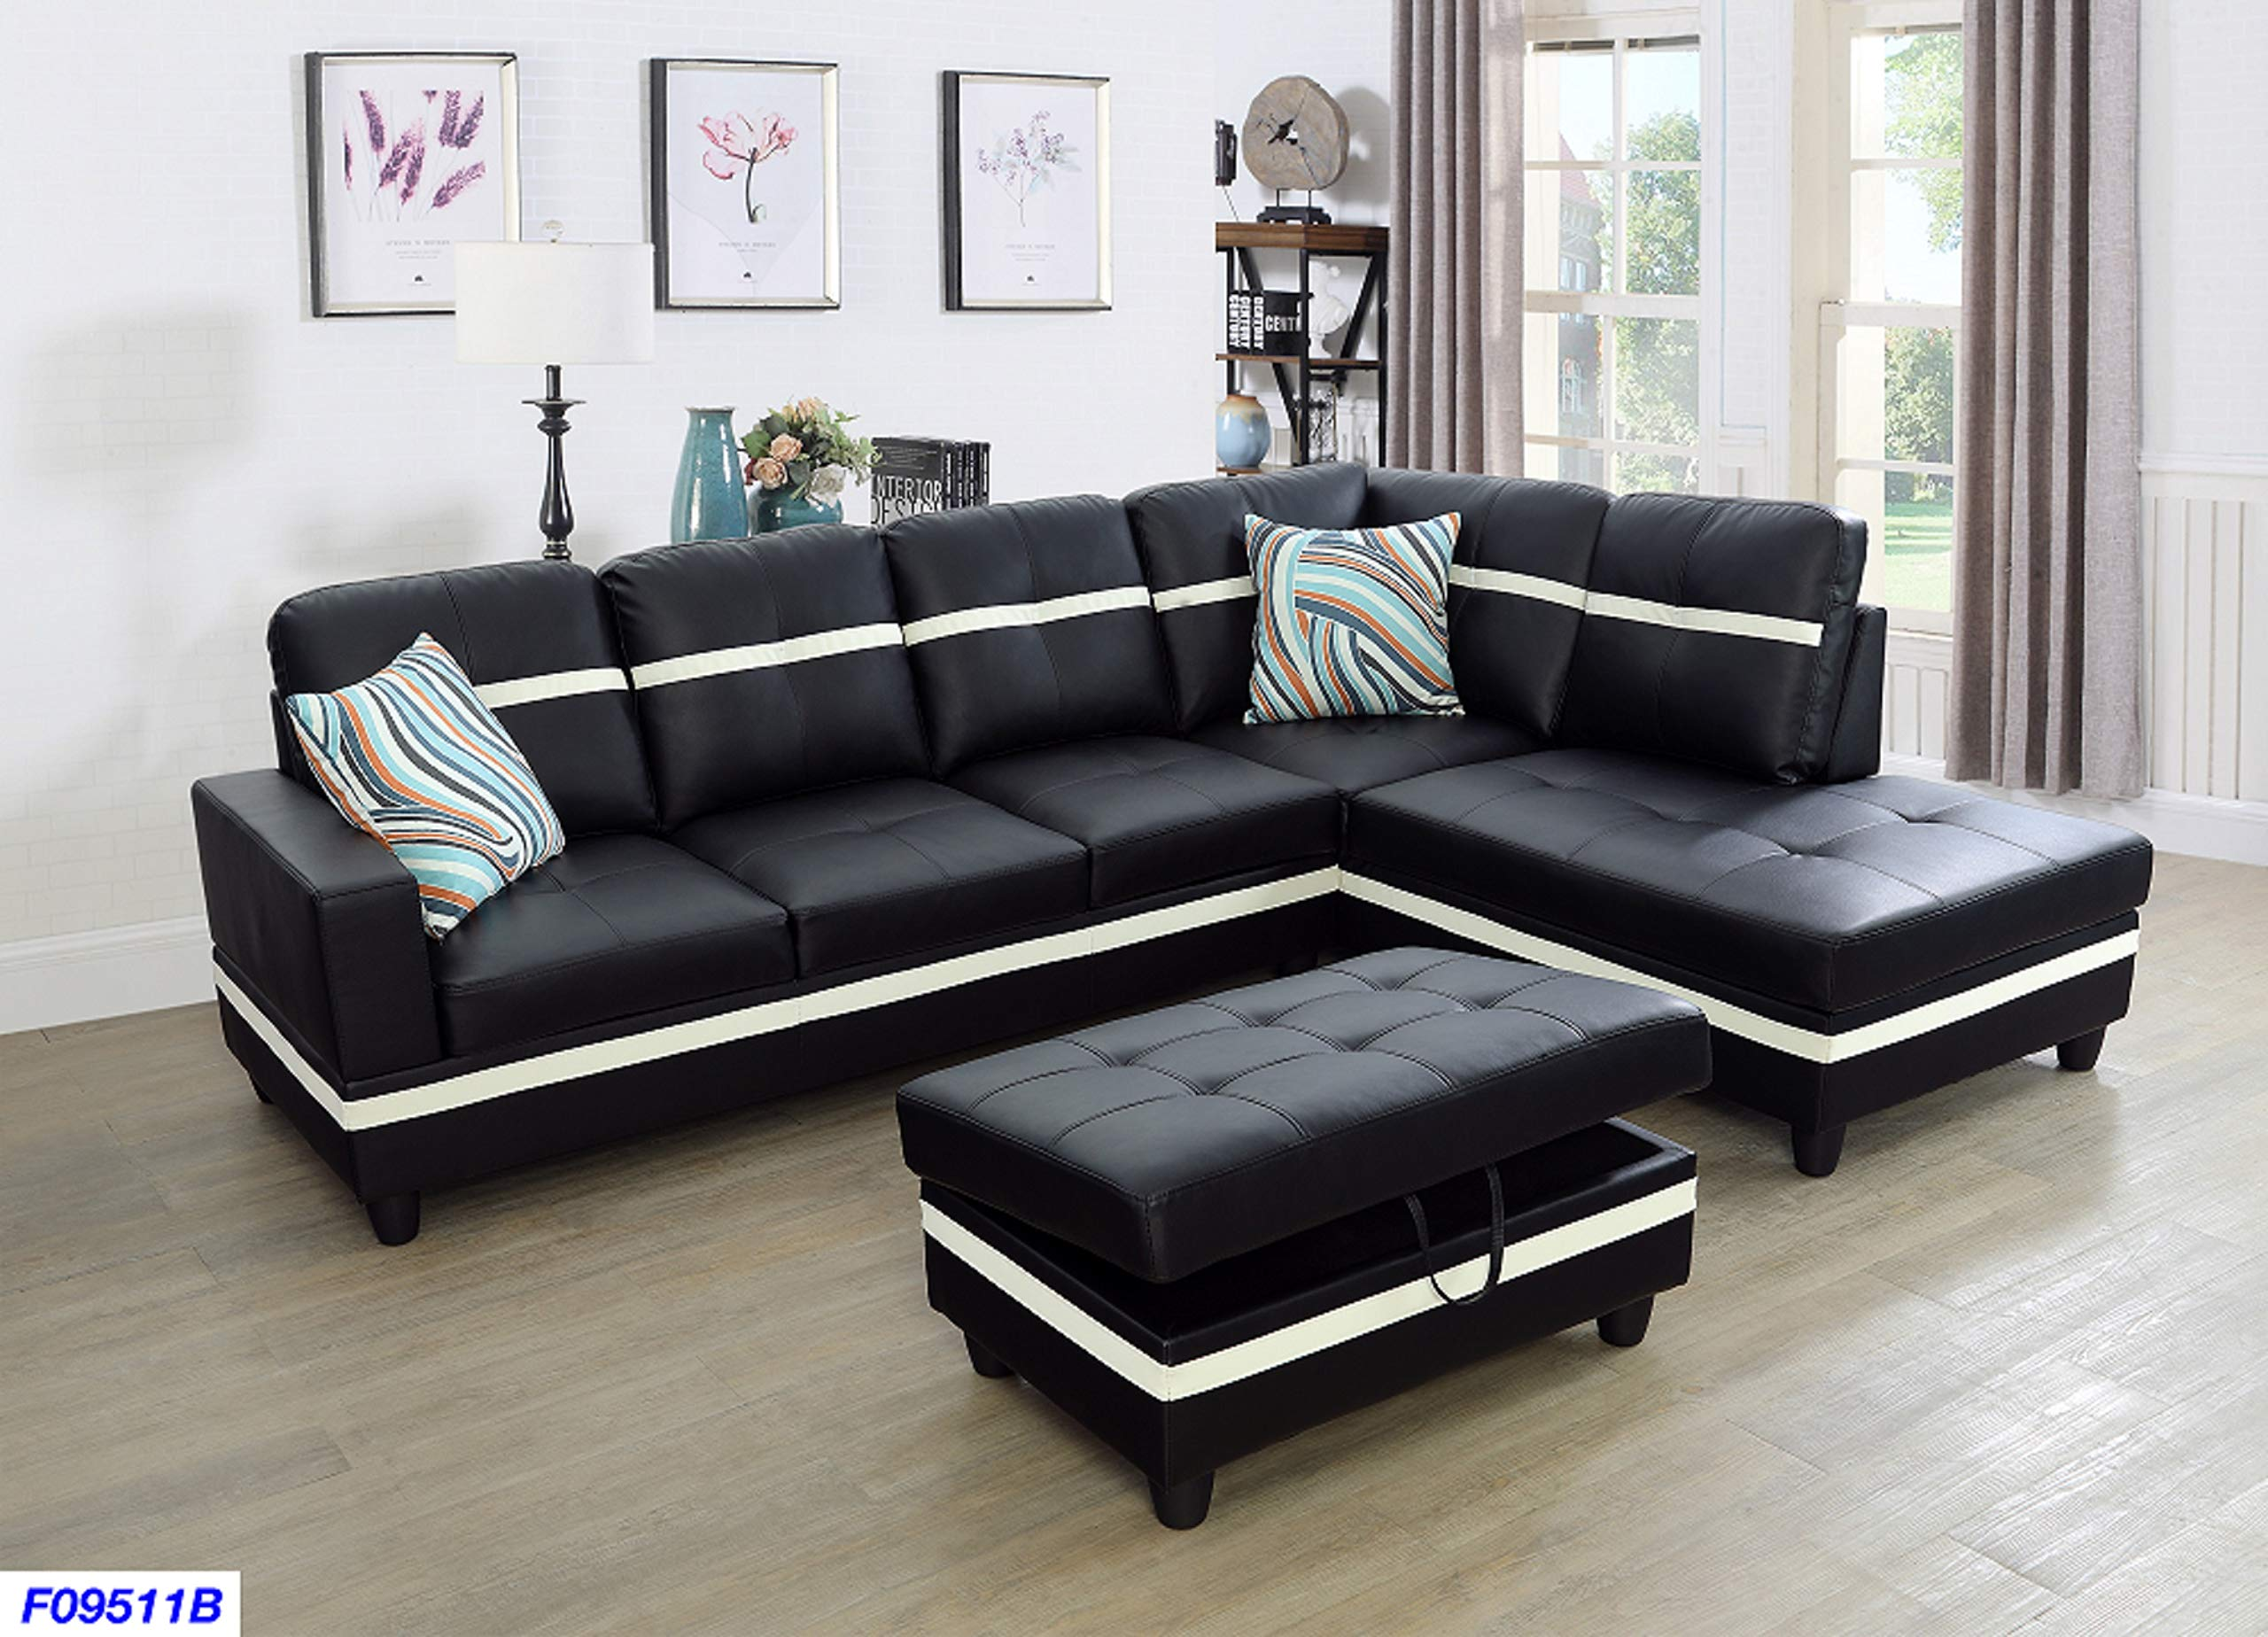 Beverly Fine Funiture Sectional Sofa Set, Black with White Stripe by Beverly Fine Funiture